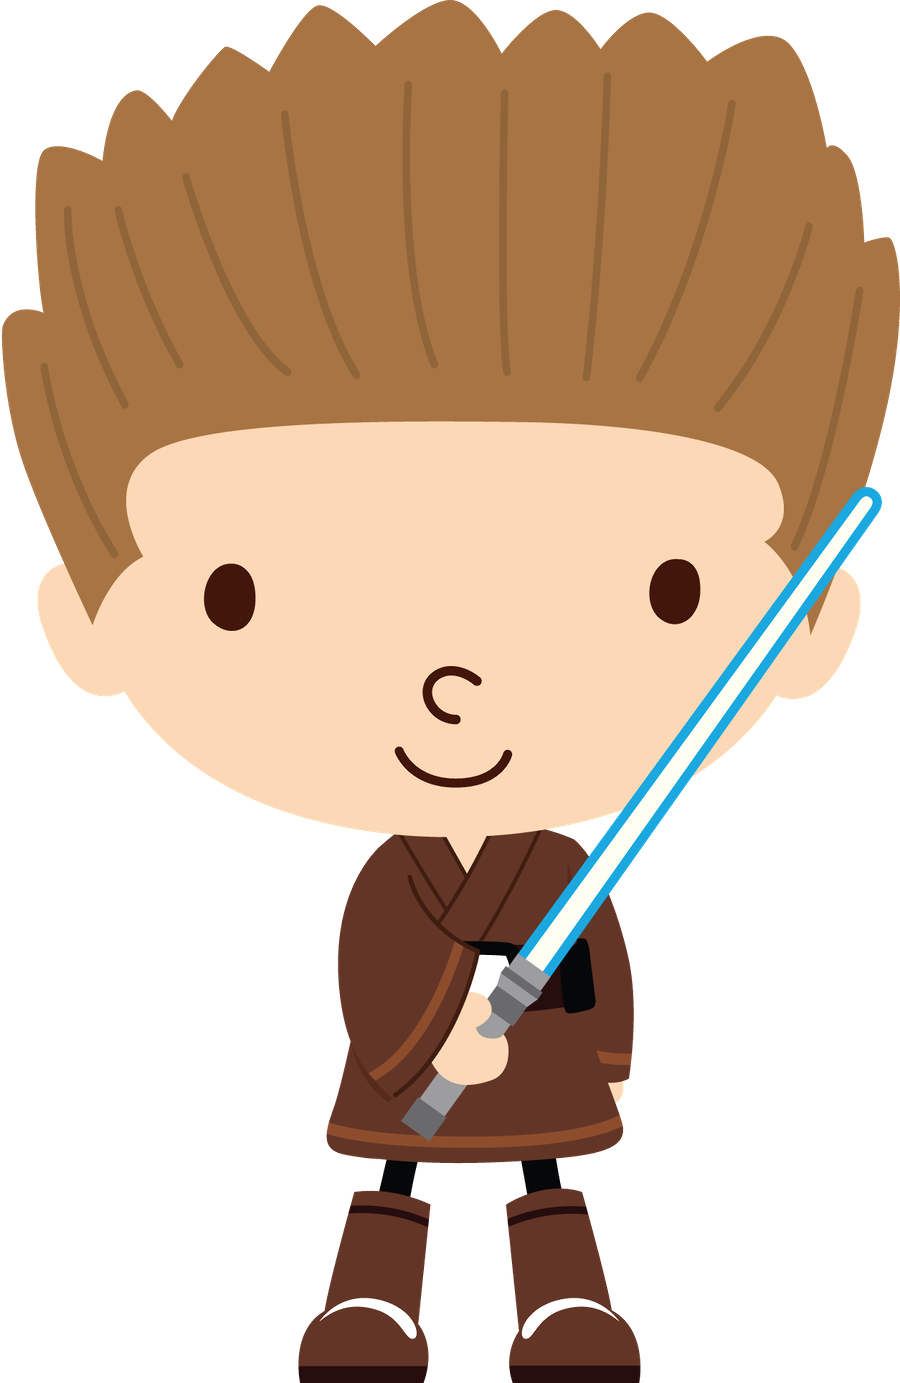 Finn star wars clipart graphic freeuse stock Star Wars - Minus | already felt- characters 2 | Pinterest | Star ... graphic freeuse stock